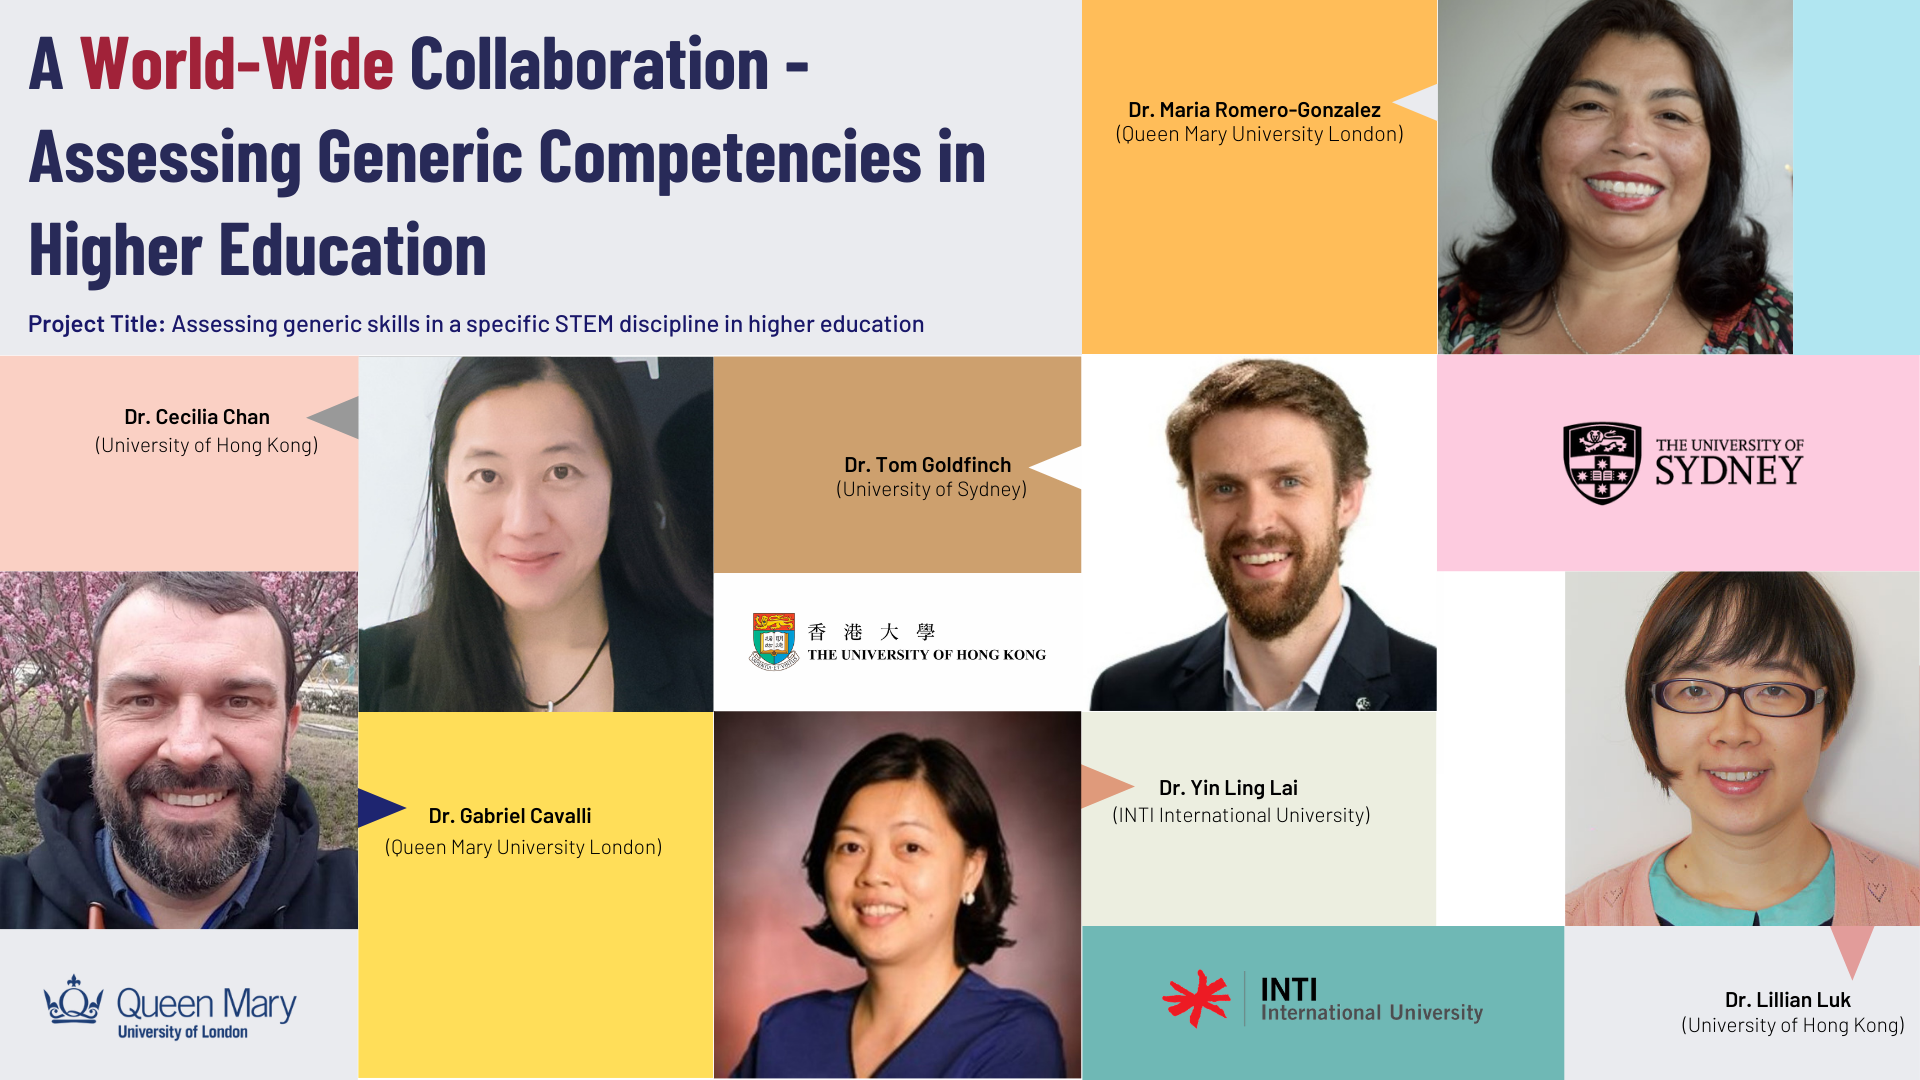 A World-Wide Collaboration - Assessing Generic Competencies in Higher Education